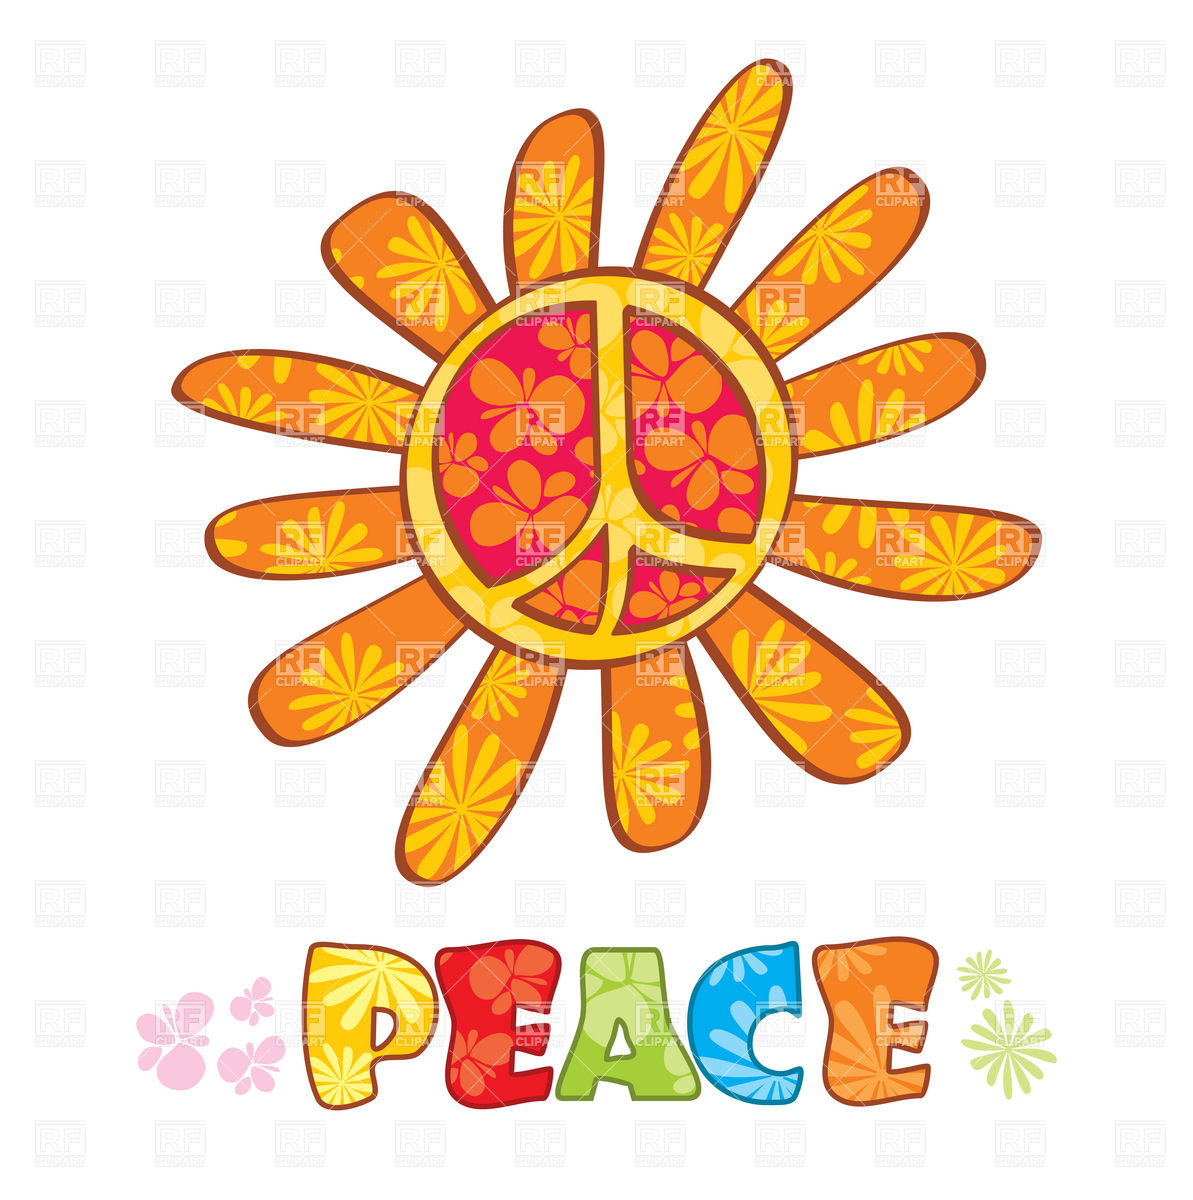 Hippie Peace Symbol With Petals Download Royalty Free Vector Clipart